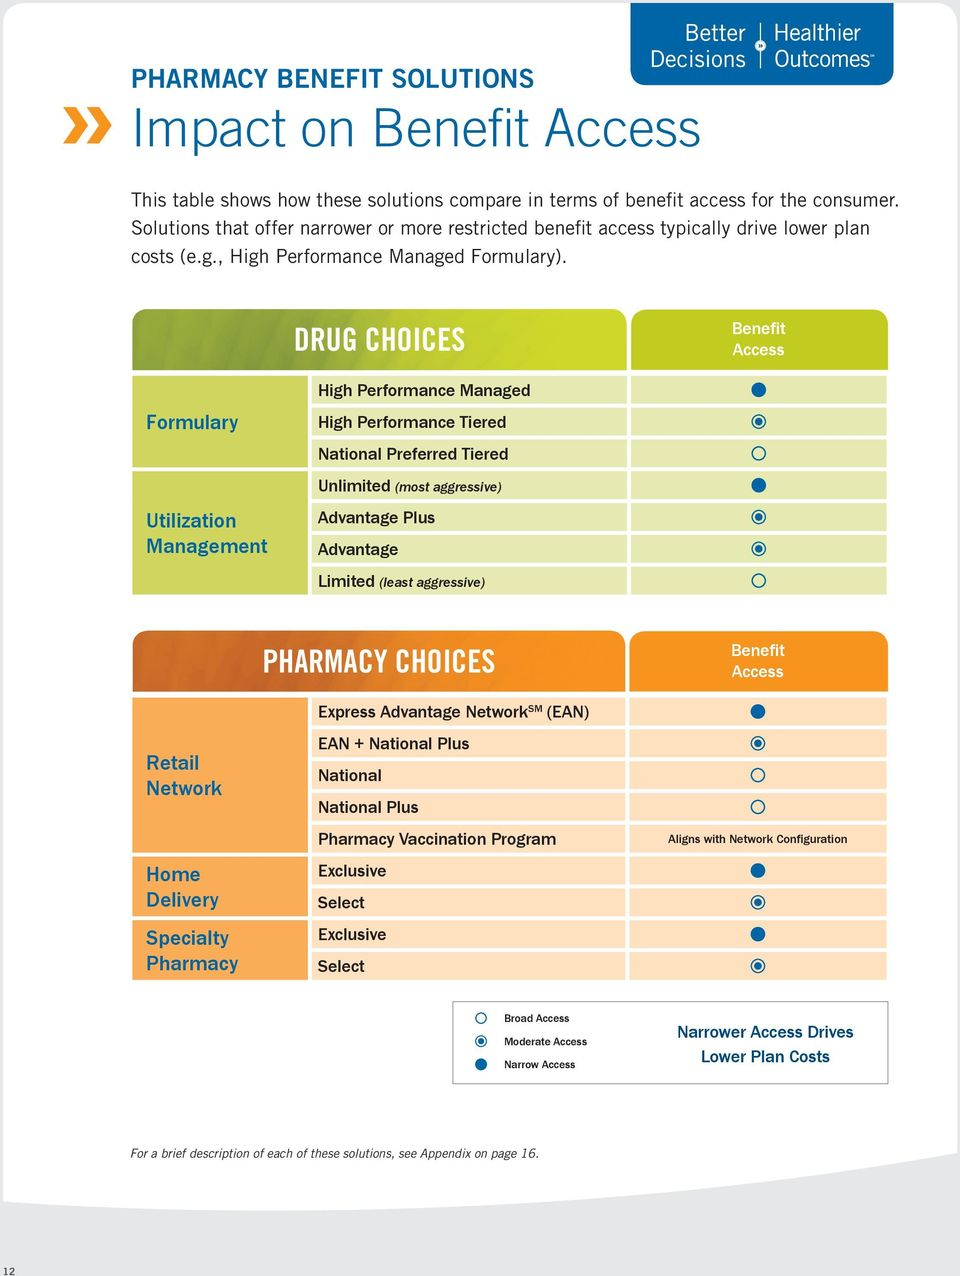 DRUG CHOICES Benefit Access High Performance Managed Formulary High Performance Tiered National Preferred Tiered Unlimited (most aggressive) Utilization Management Advantage Plus Advantage Limited